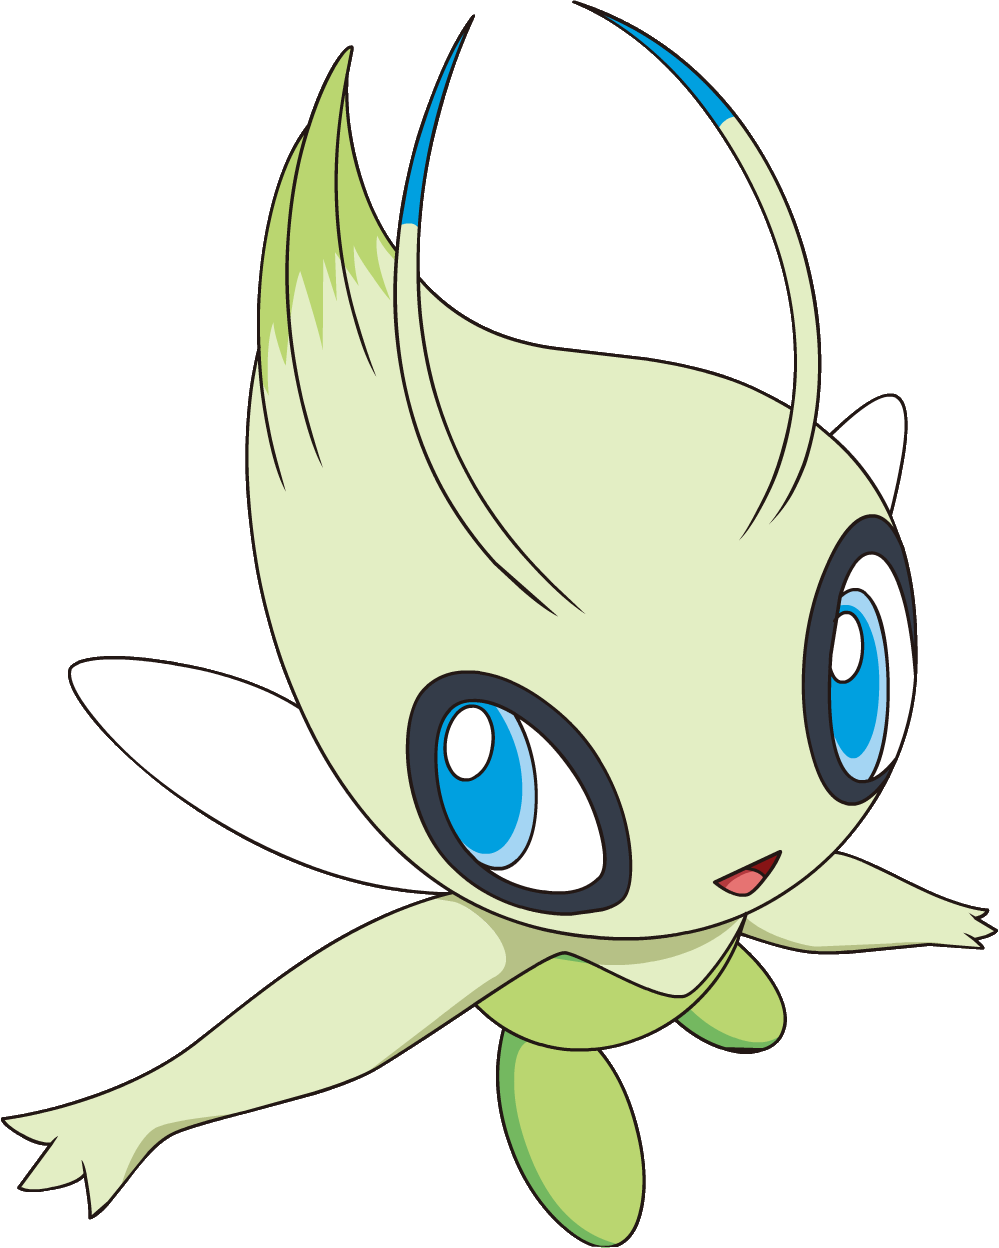 Pokemon The Mythical Celebi Is Available From March 1 Vg247